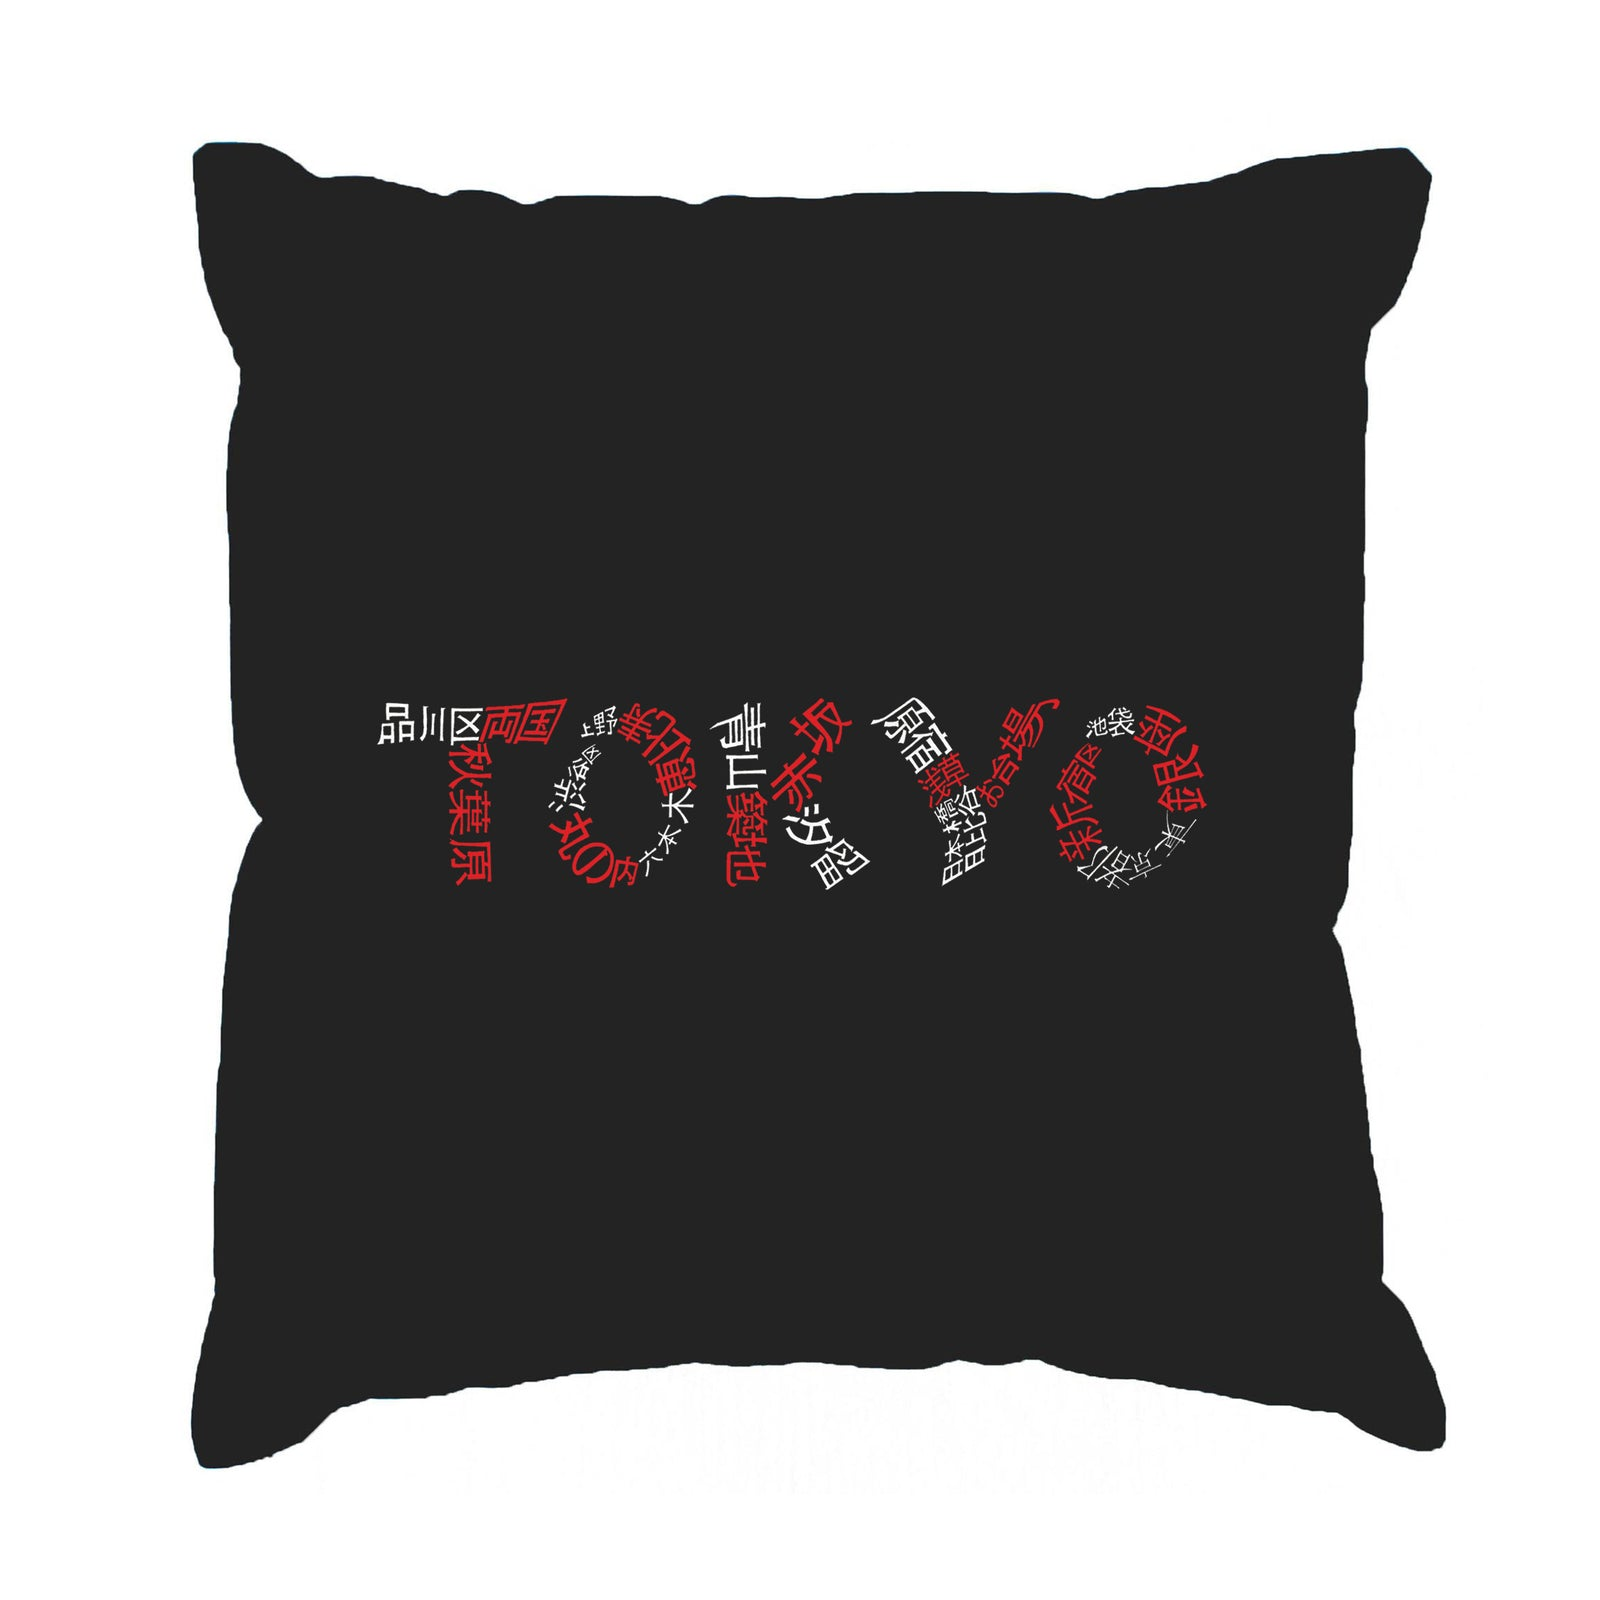 Throw Pillow Cover - THE NEIGHBORHOODS OF TOKYO